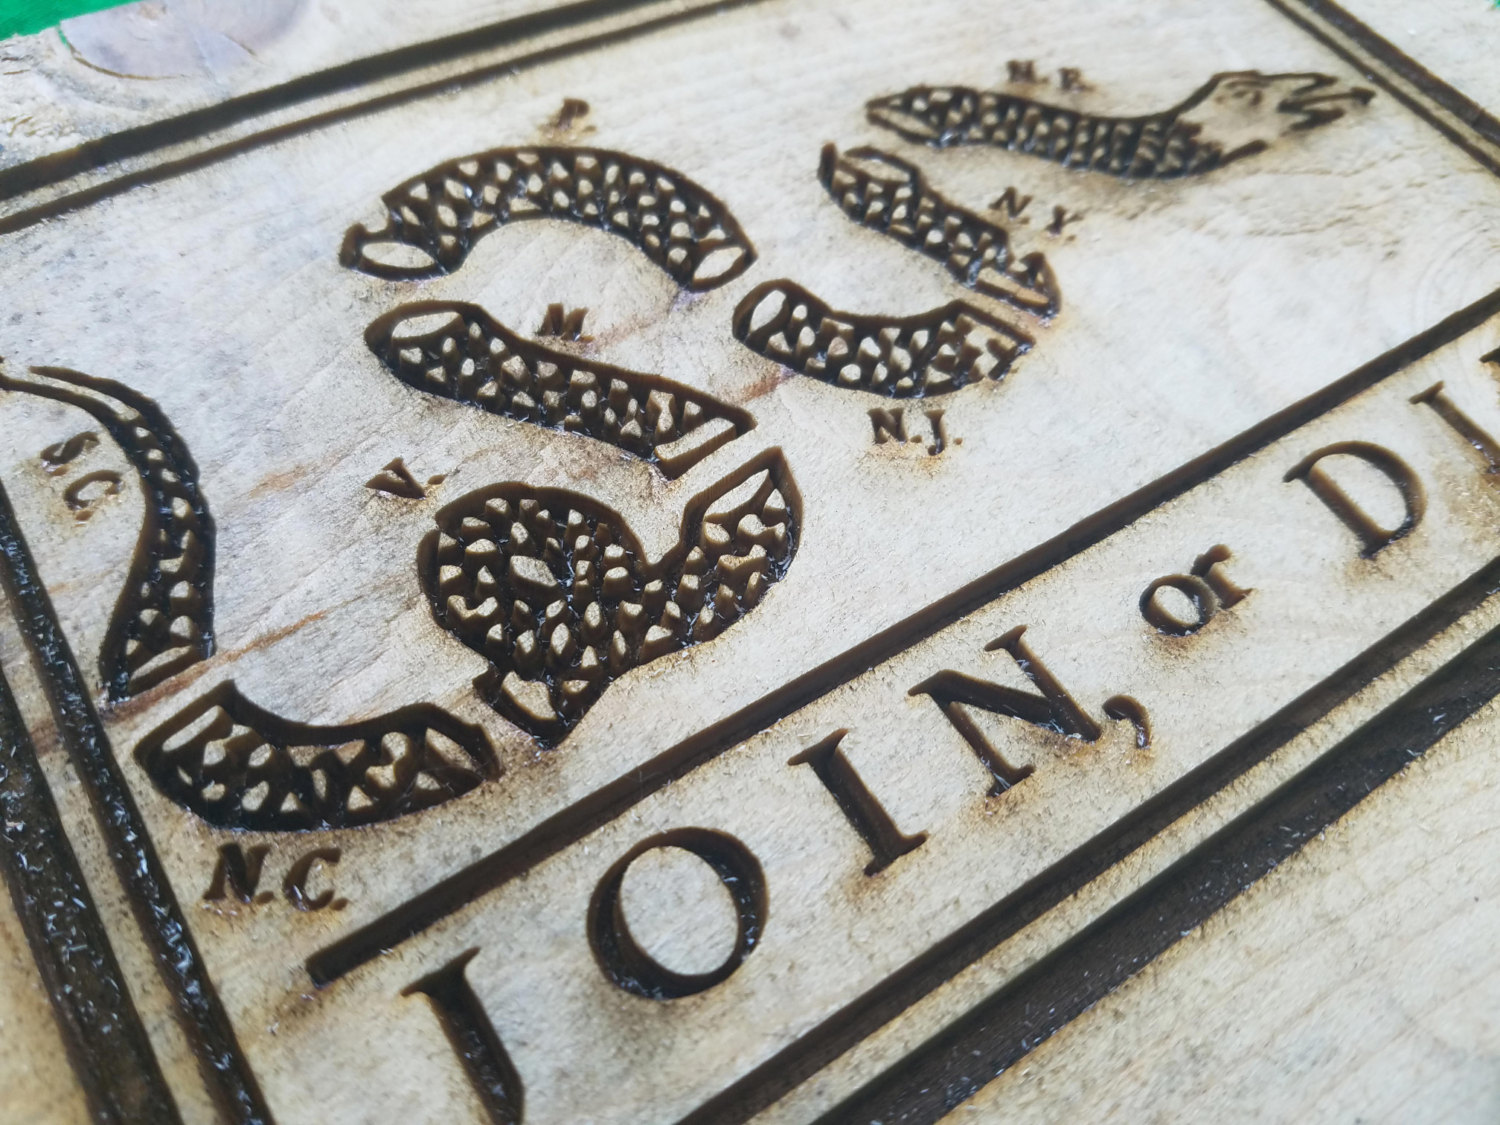 Join Or Die Flag Engraving Weathered Wood One Of A Kind Vintage Art Distressed Weathered Recycled Snake White